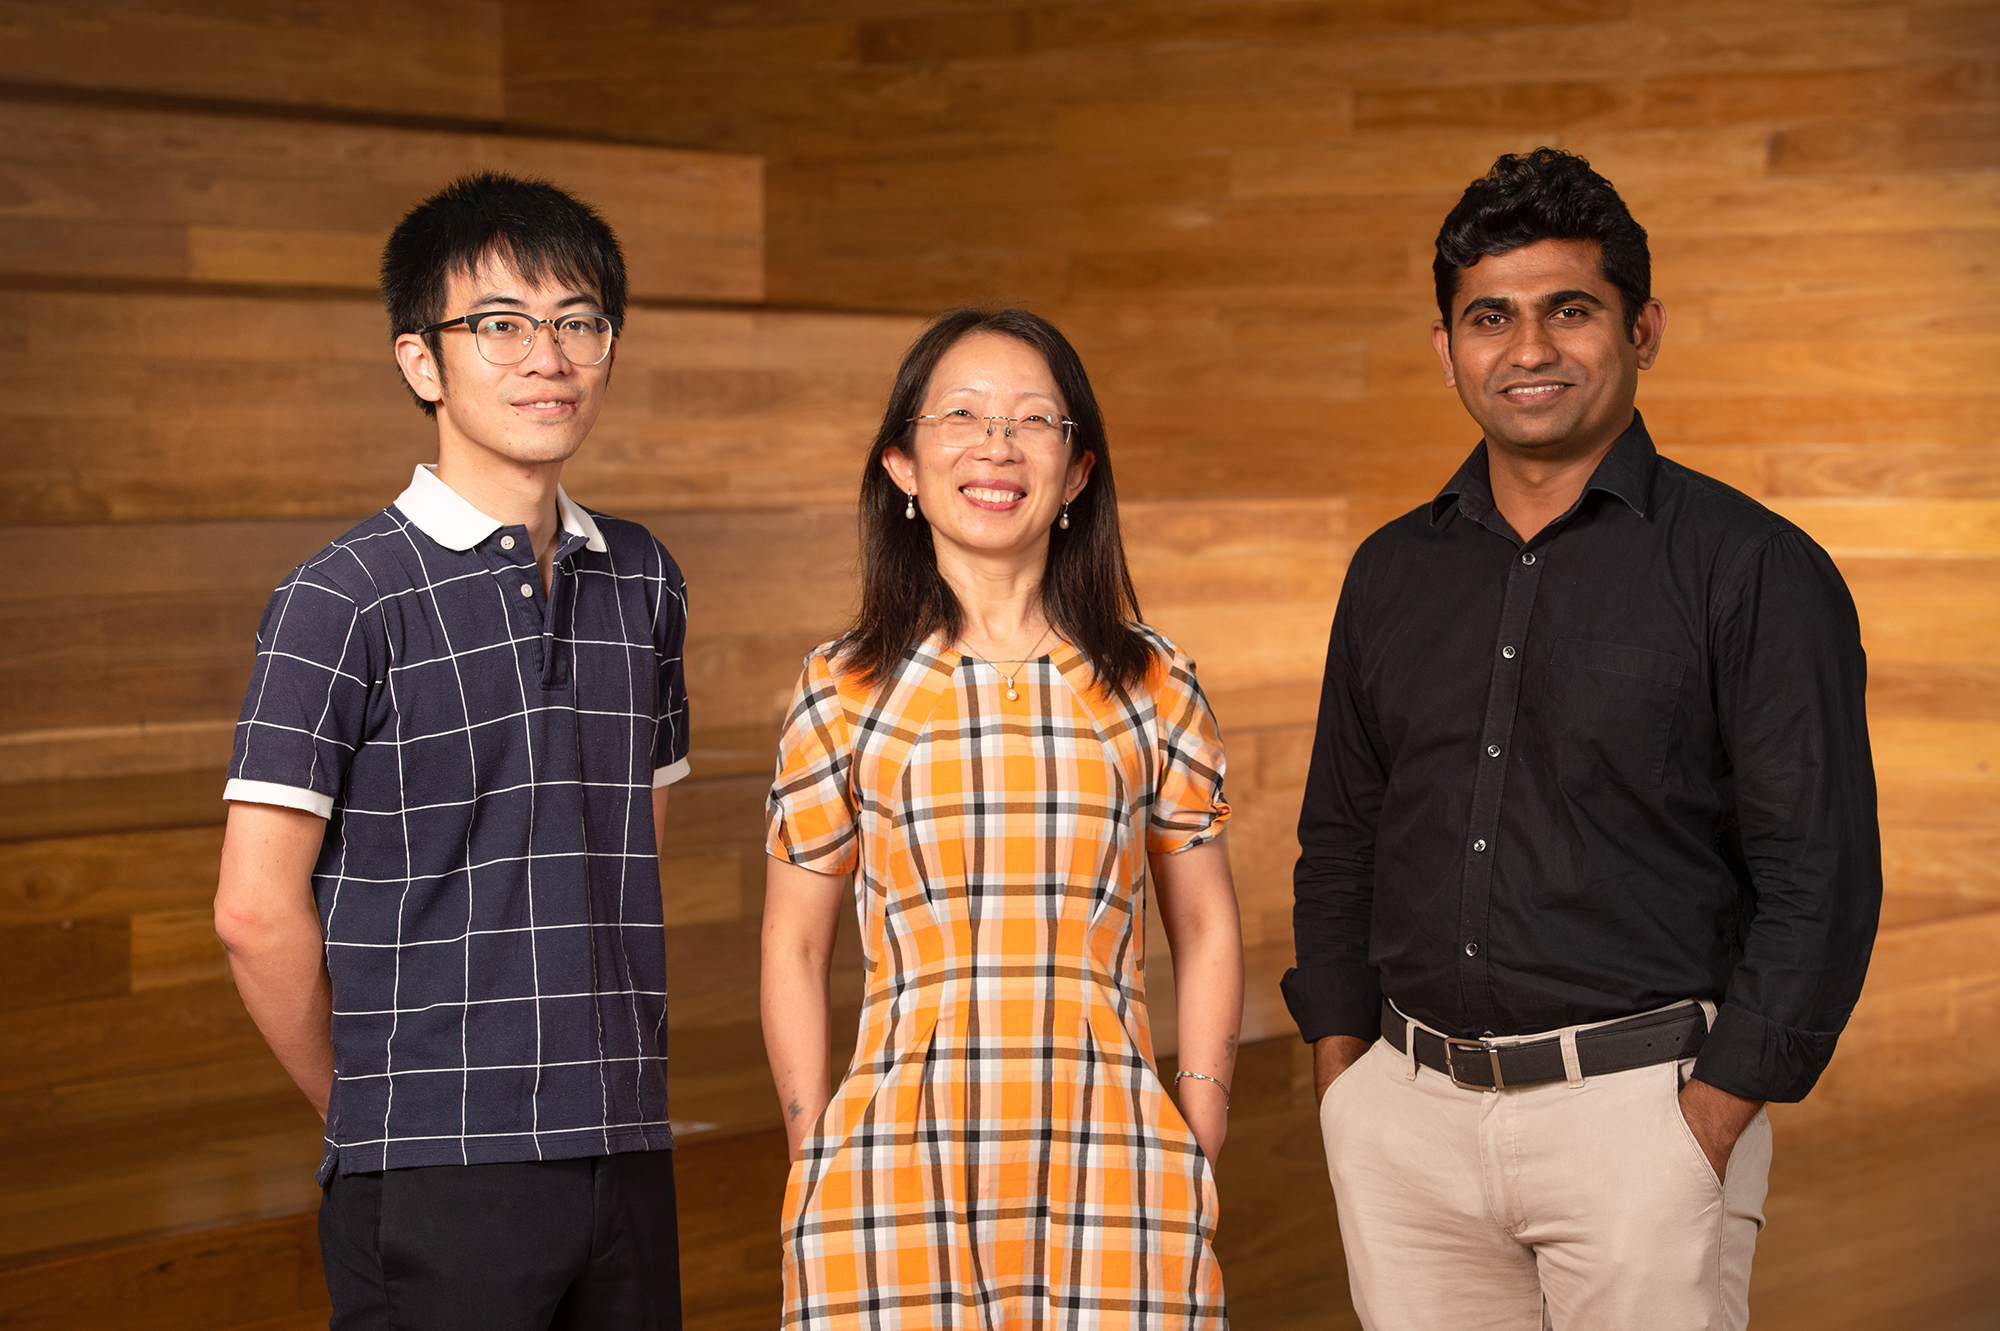 From left, Dr Chao Zang, Professor Hongxia Wang and Dr Deepak Dubal.